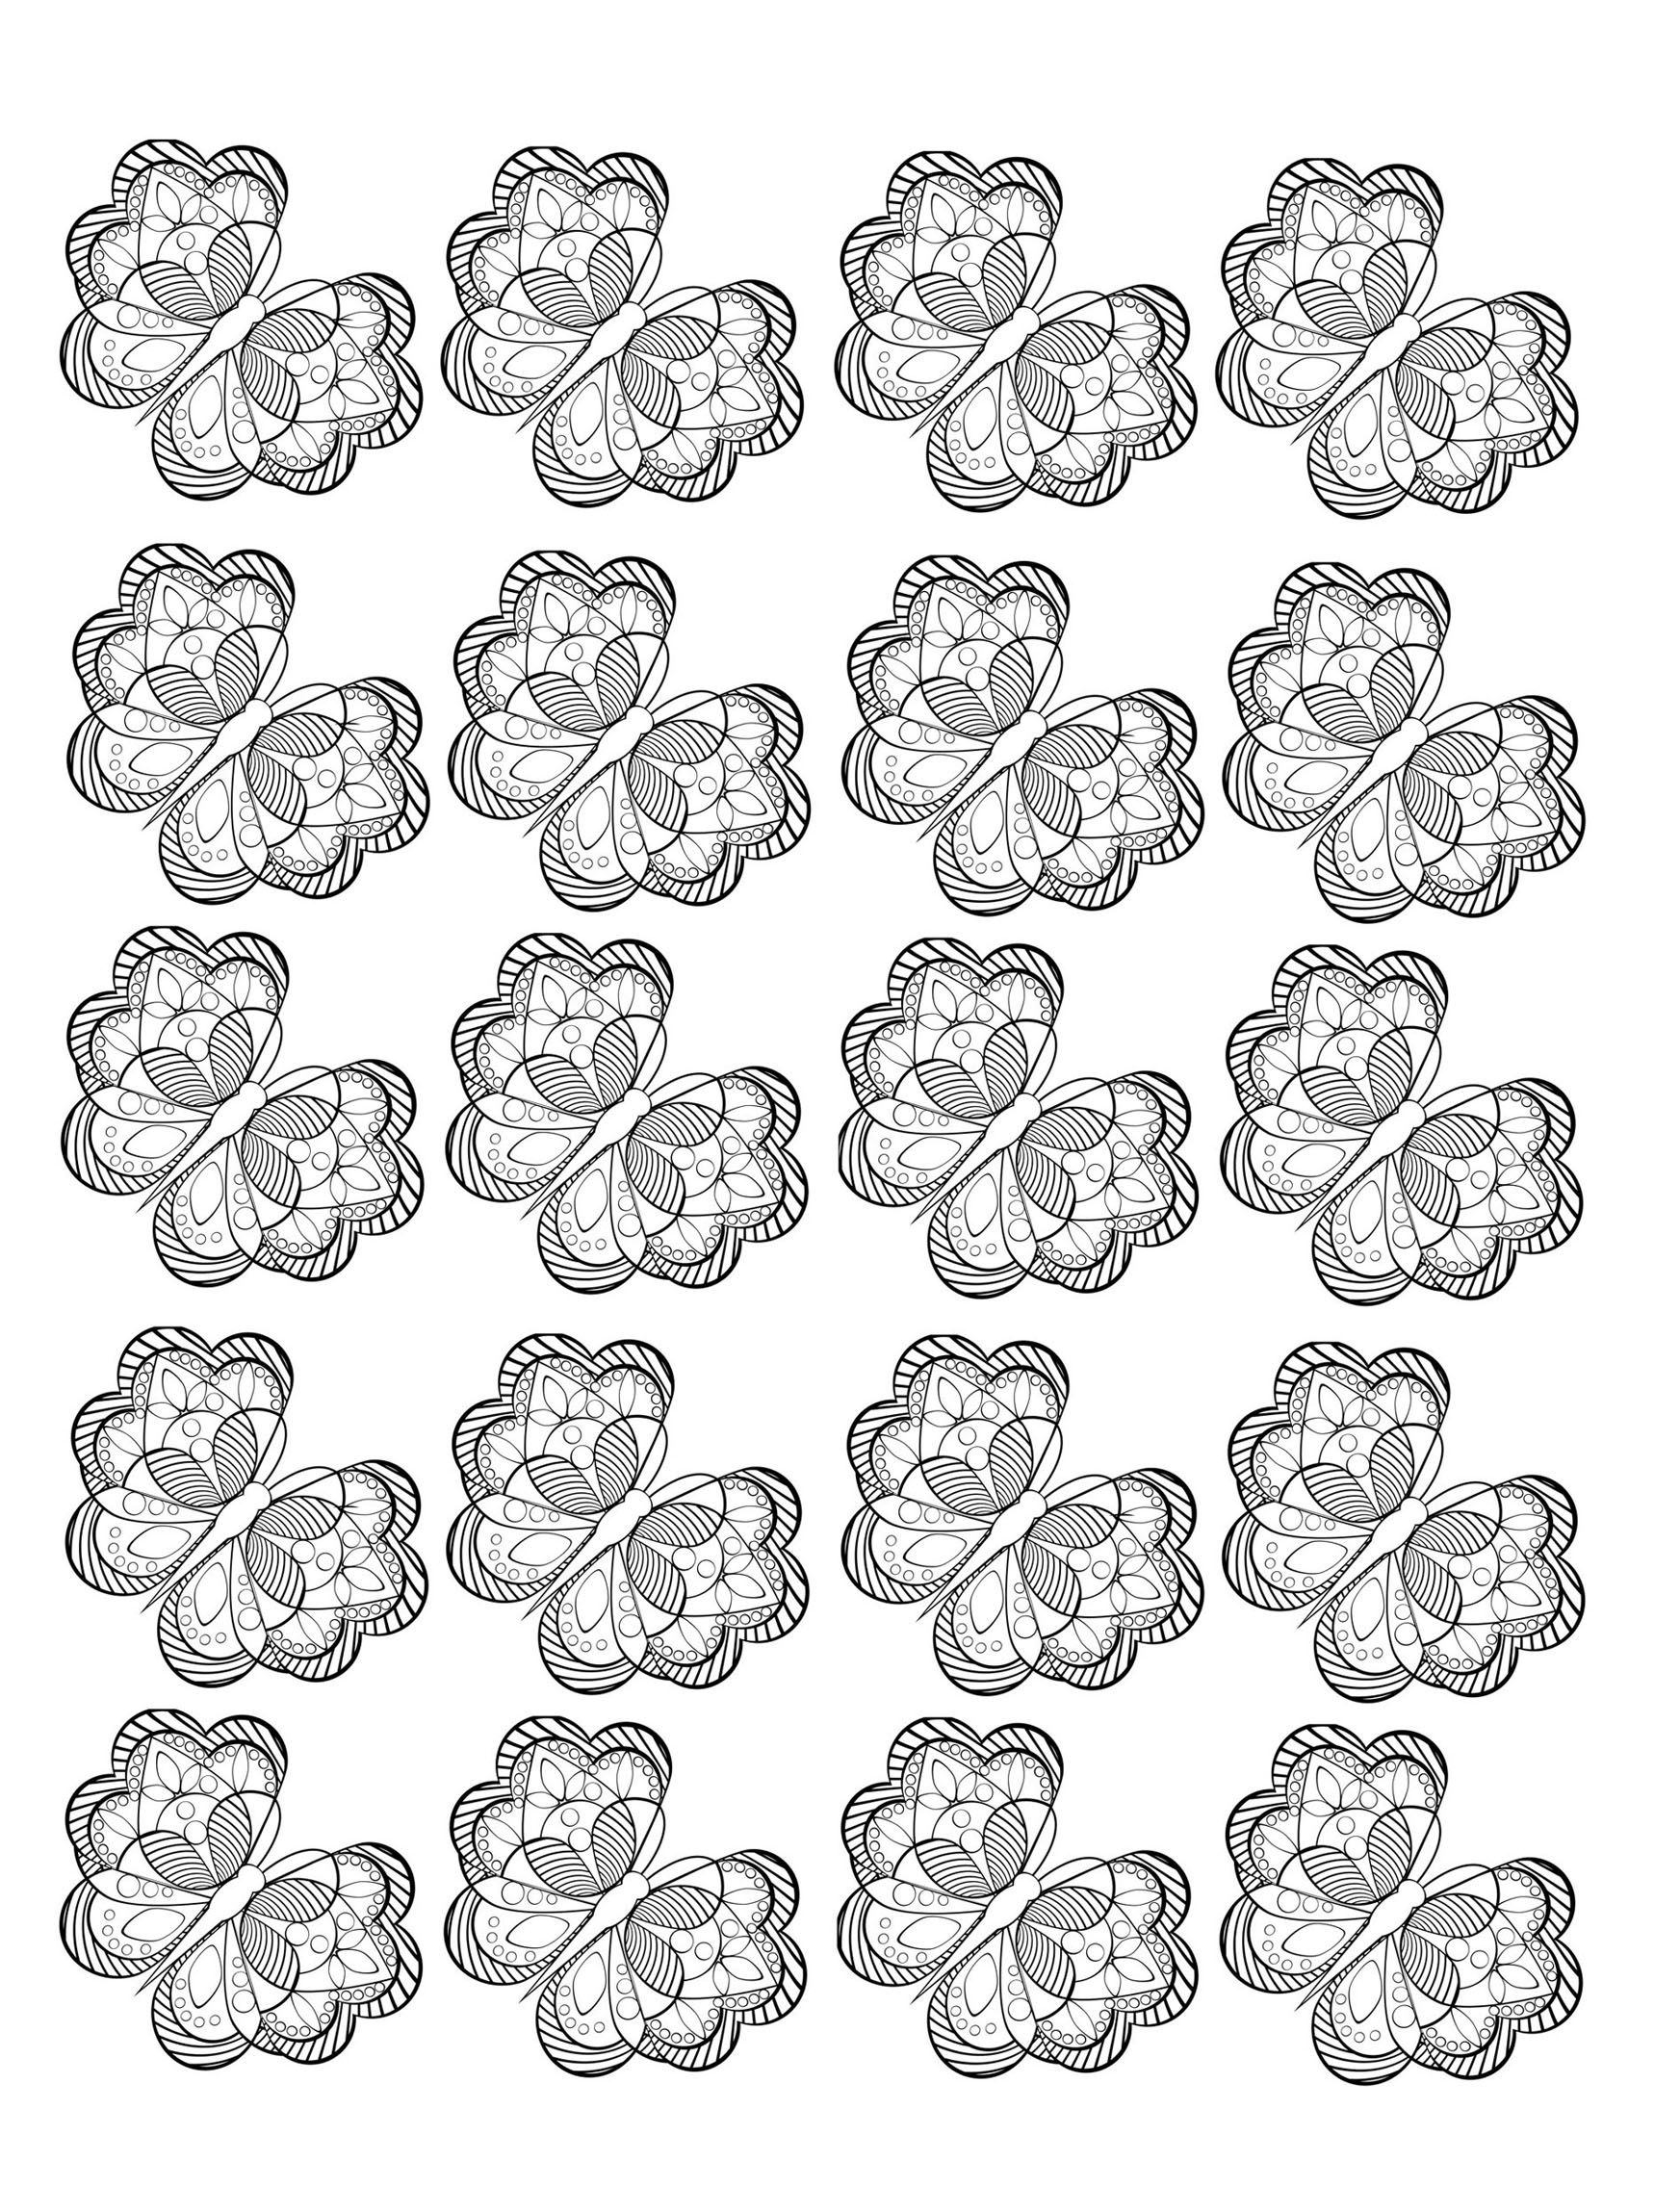 Free Coloring Page Adult Butterfly Composed Of A Repeated Pattern Pretty In Black And White With Very Small